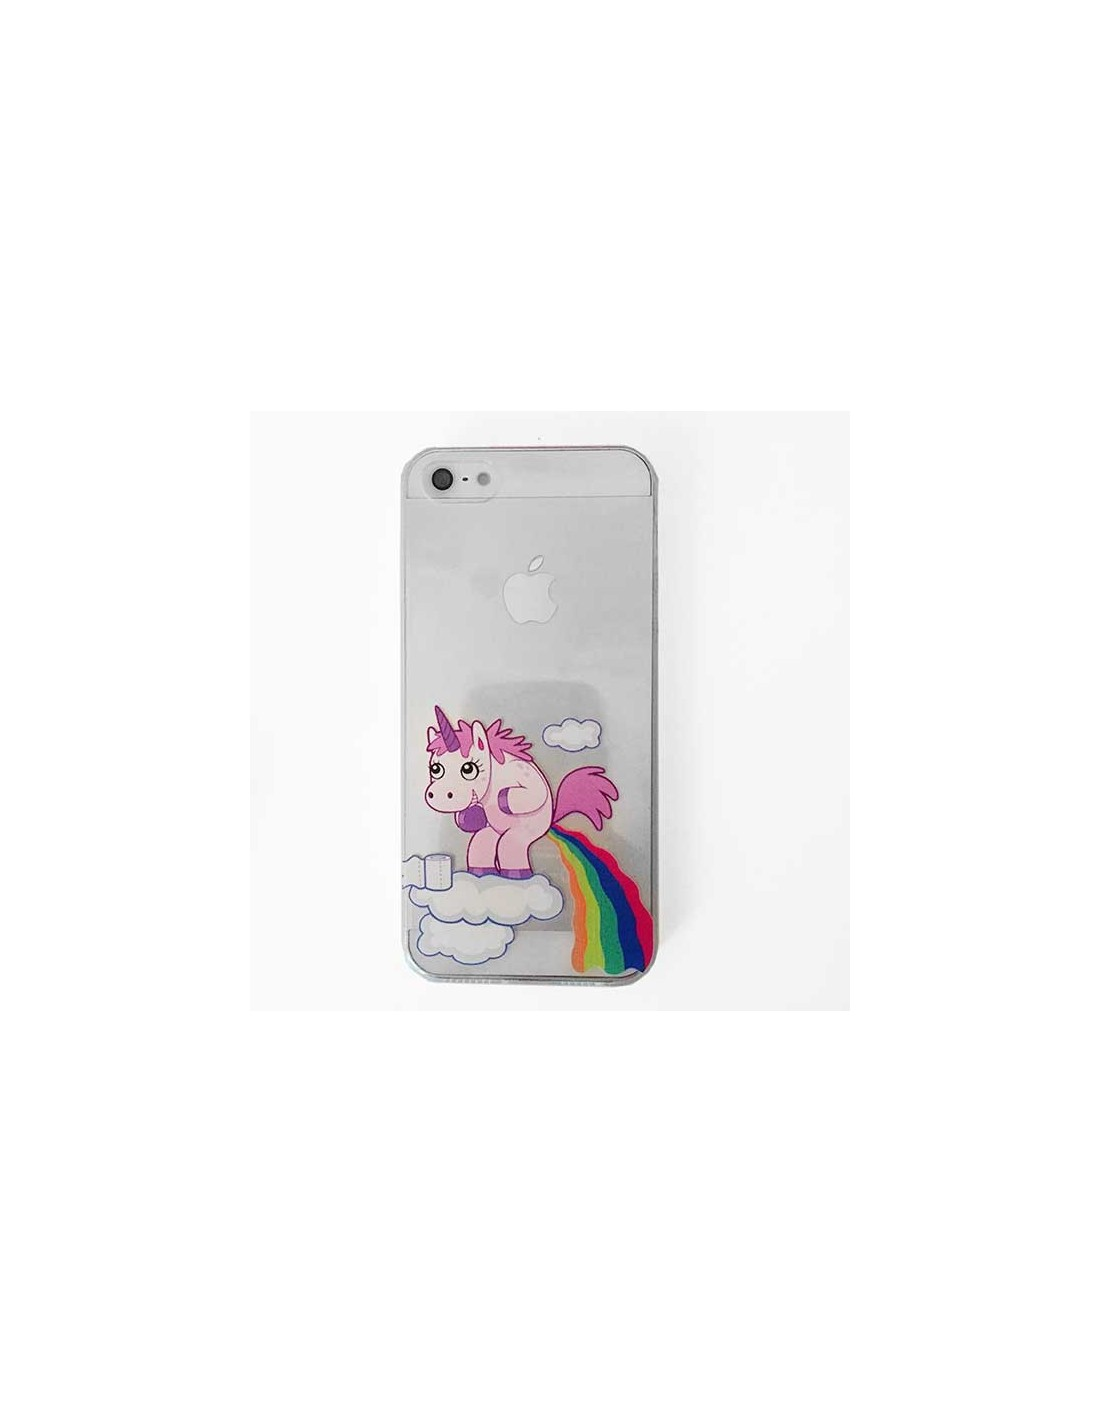 coque licorne caca arc en ciel transparente en silicone semi rigide tpu pour iphone 5 5s et se. Black Bedroom Furniture Sets. Home Design Ideas